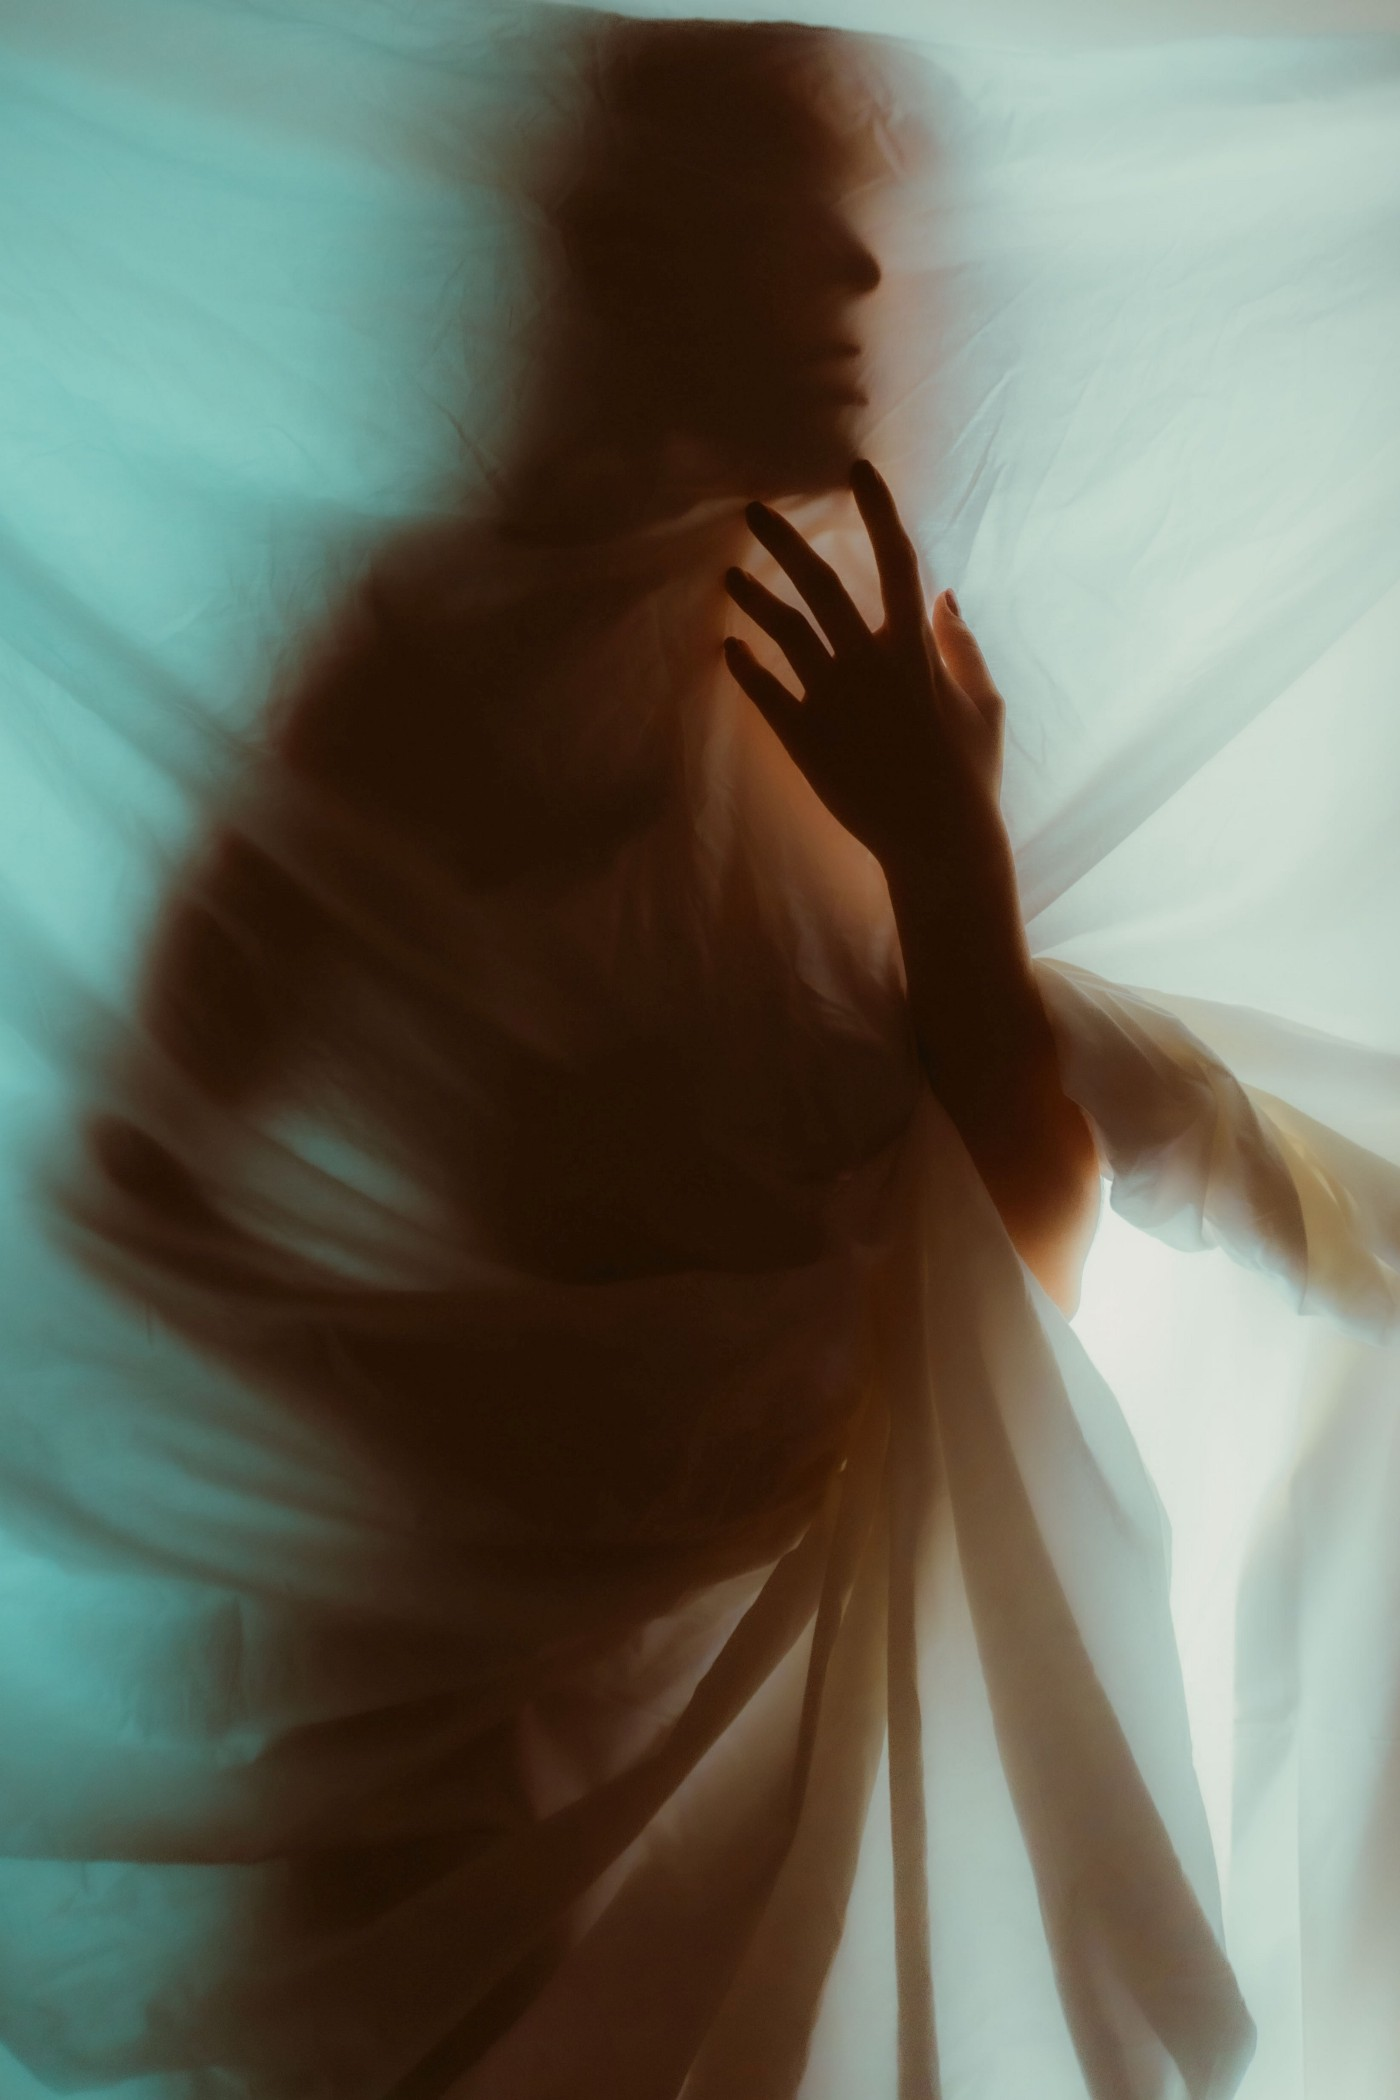 A pale ghost-like figure—of unidentified gender—enshrouded in a transparent fabric, a gauzy curtain like a scrim used in theater productions. The figure's face is not visible. Its body is hidden, wrapped up, almost trapped and entangled in this thin film-like curtain; only its rather large left hand is out and it is bent at the elbow, hand up almost in a dance movement or supplication, palm facing inward, index finger lightly touching chin.